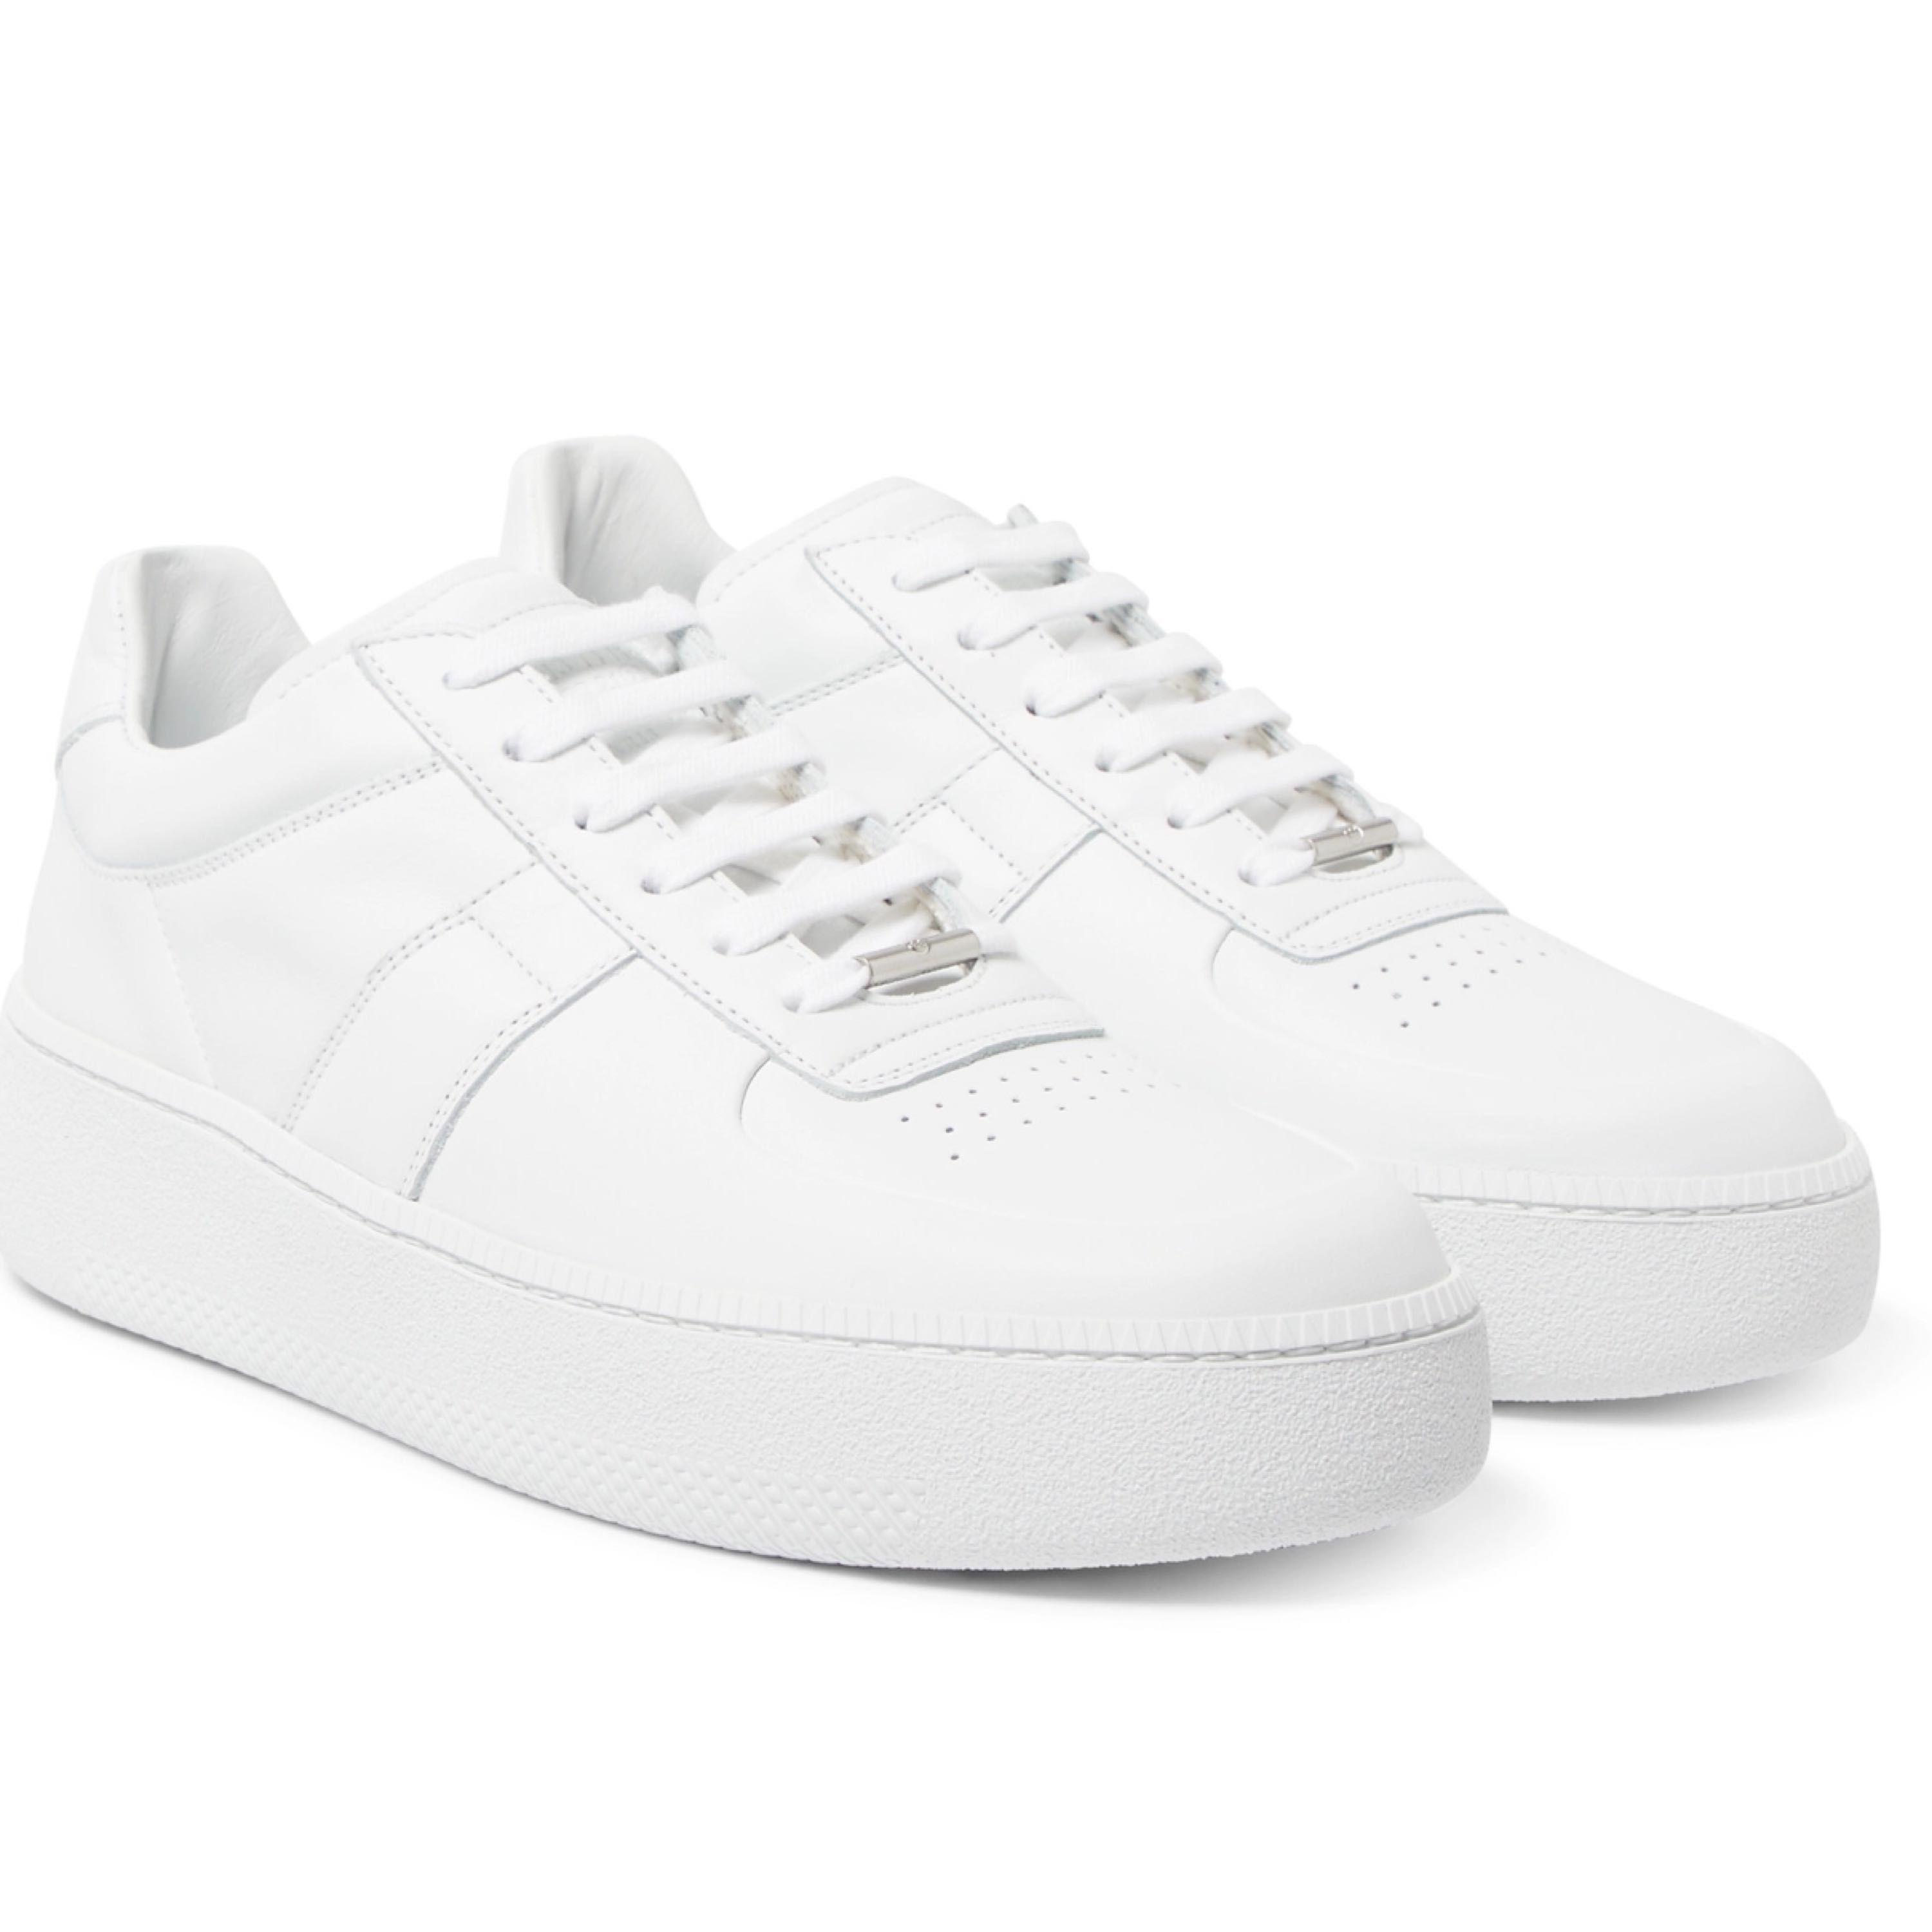 Classic White sneakers from the exclusive French line Maison Margiela. Supple, soft and top of the line leather, comfort and quality come together to form just about the perfect sneaker around.  More information about the sneakers on Mr Porter here:  https://www.mrporter.com/en-se/mens/maison_margiel a/leather-sneakers/881306?ppv=2  Used only once, loved the comfort but just didn't use them enough to justify keeping it.   New price at Mr Porter : 5,400 SEK My price : 2,200kr  Questions? Drop me a msg.  Merry Xmas in advance! 2 200 kr. Skor.